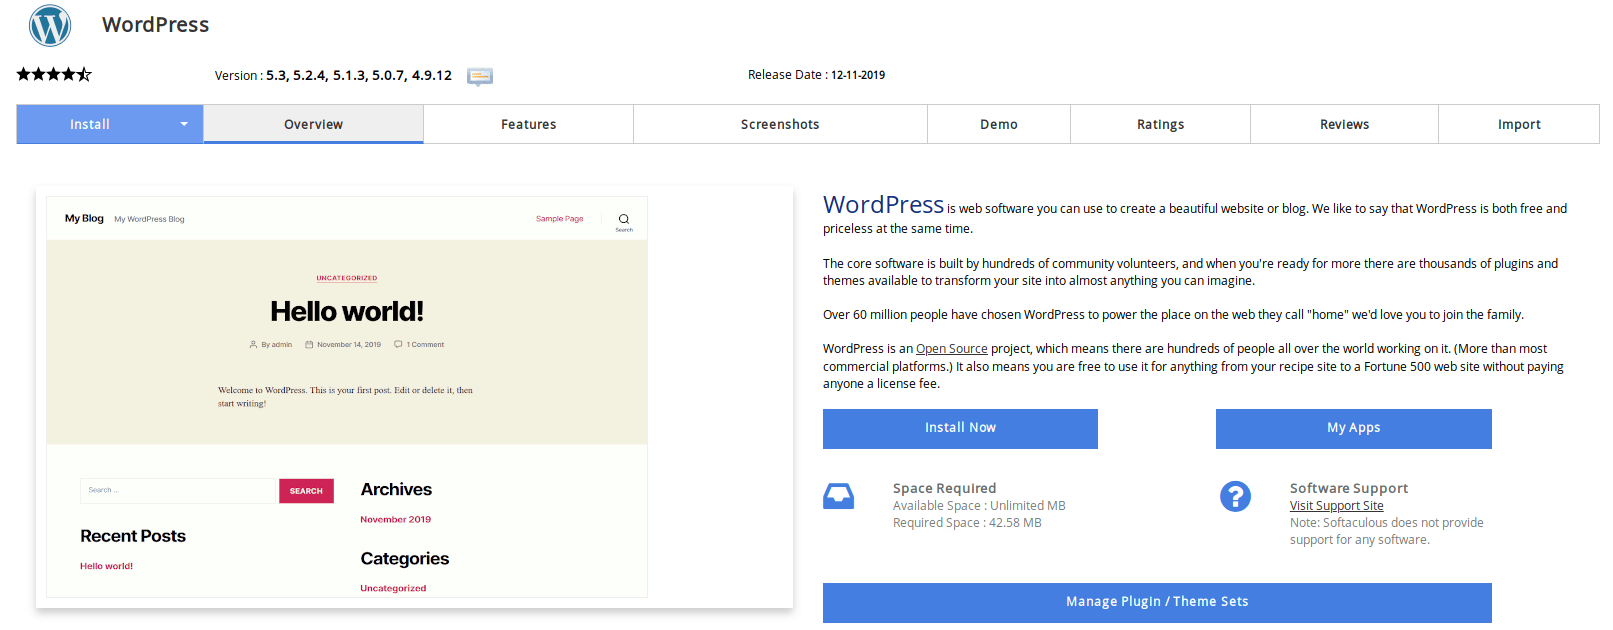 Install WordPress now